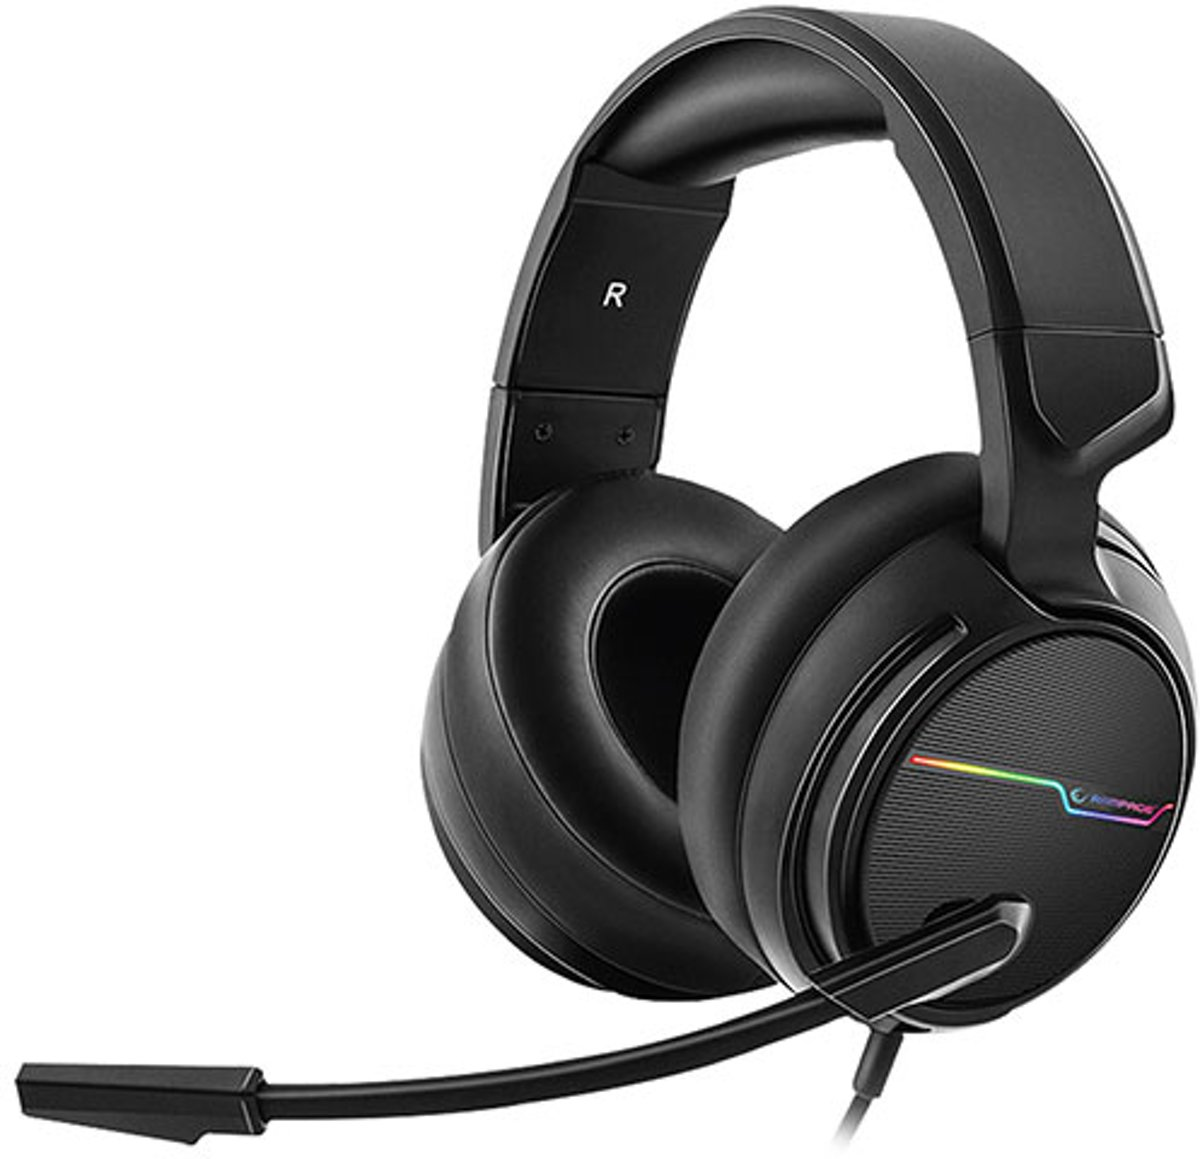 Comfort 7.1 RGB gaming headset RGW9 - Surround Sound - PC